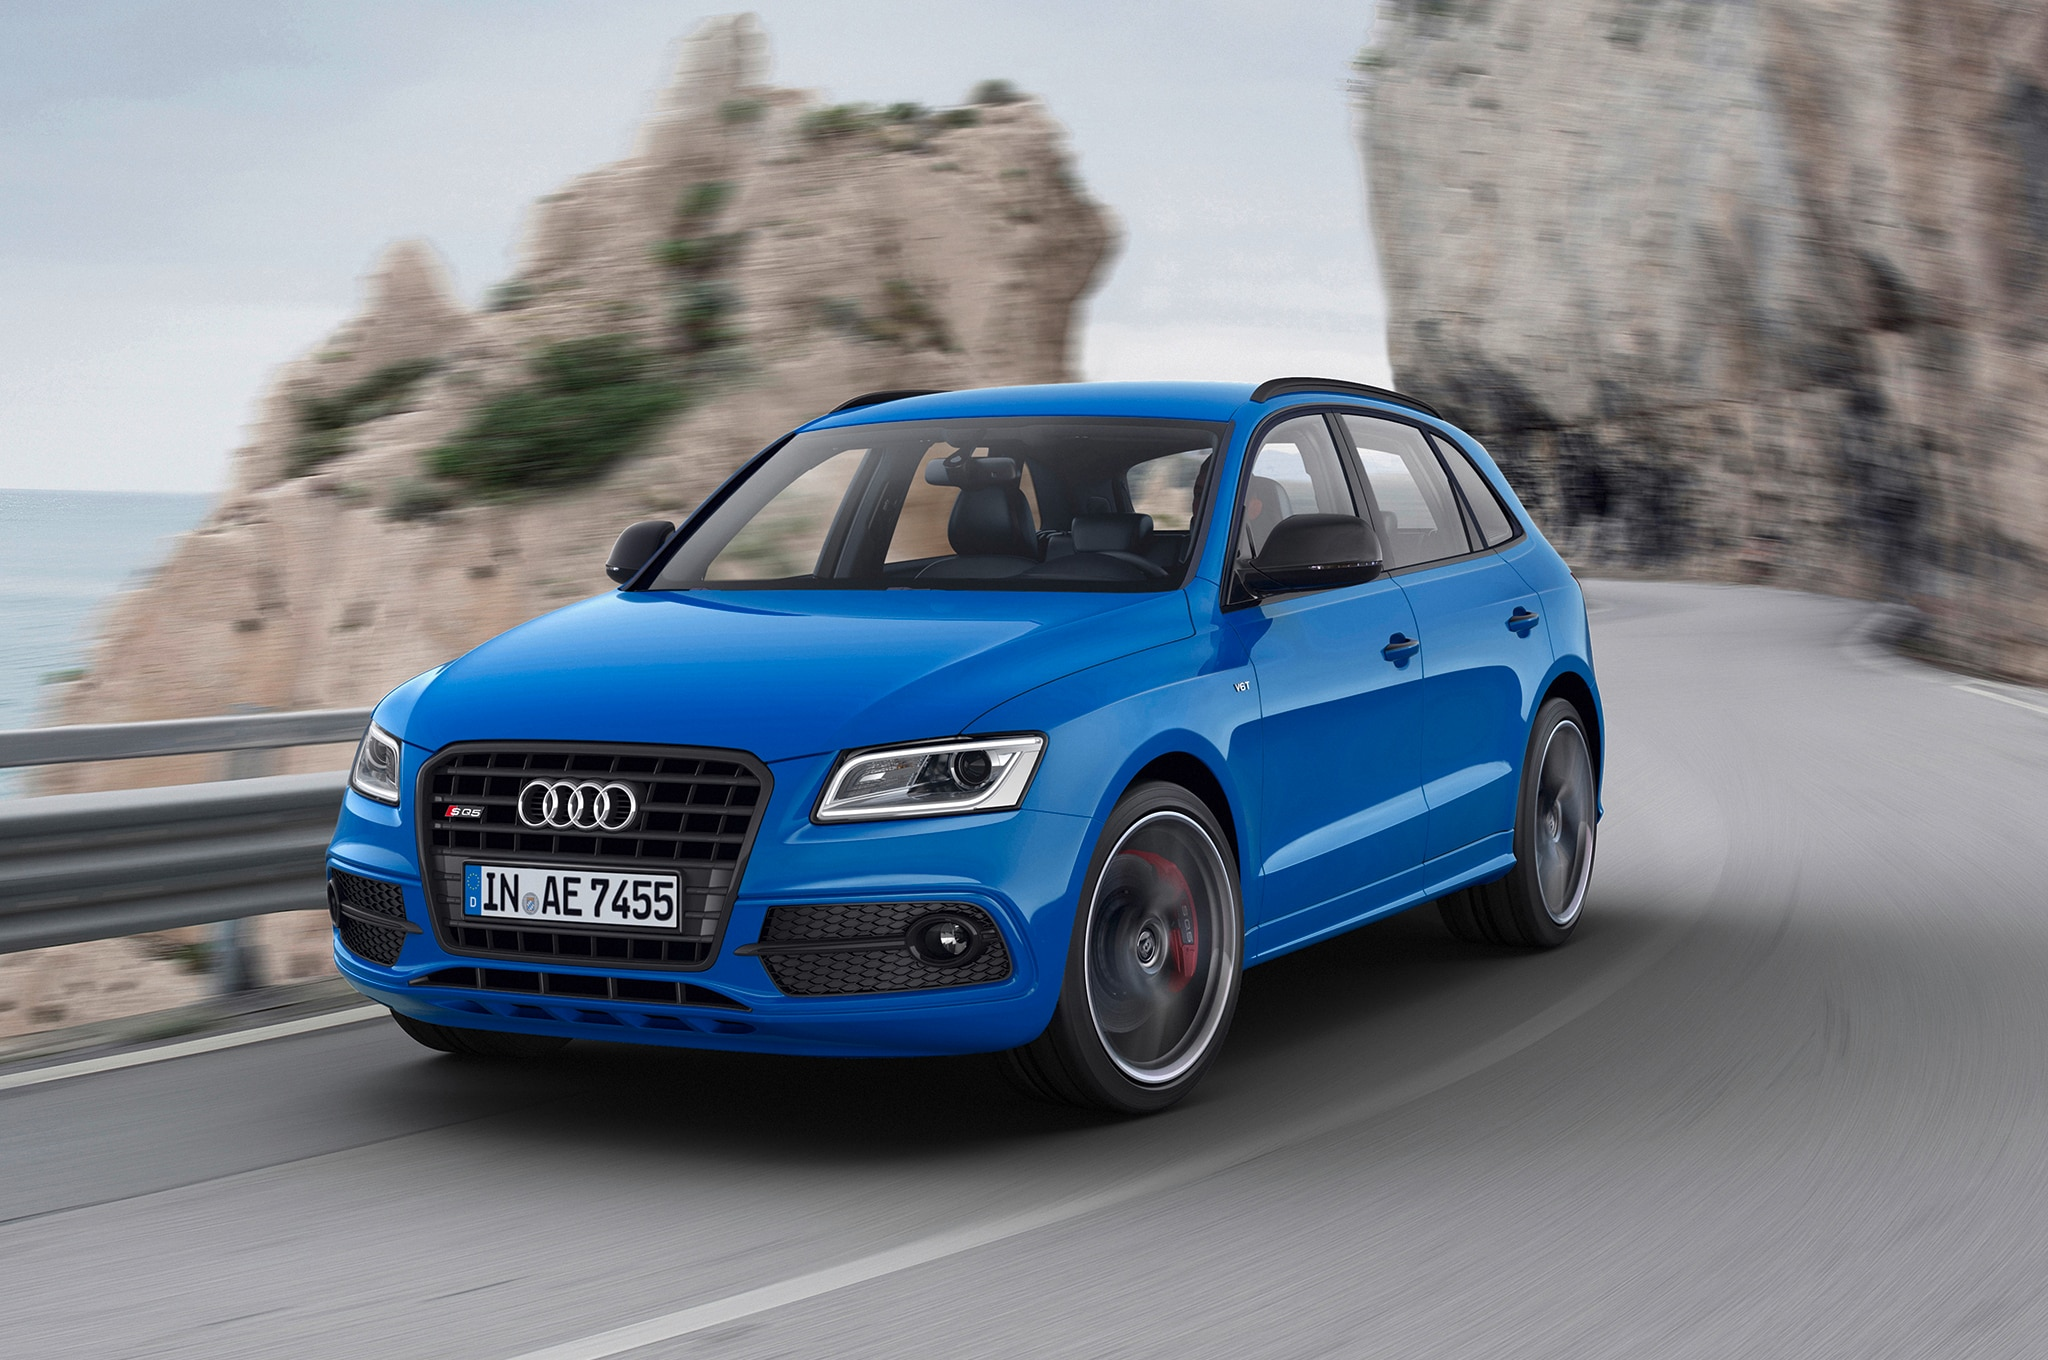 audi sq5 tdi plus unveiled in europe with 516 lb ft of torque. Black Bedroom Furniture Sets. Home Design Ideas